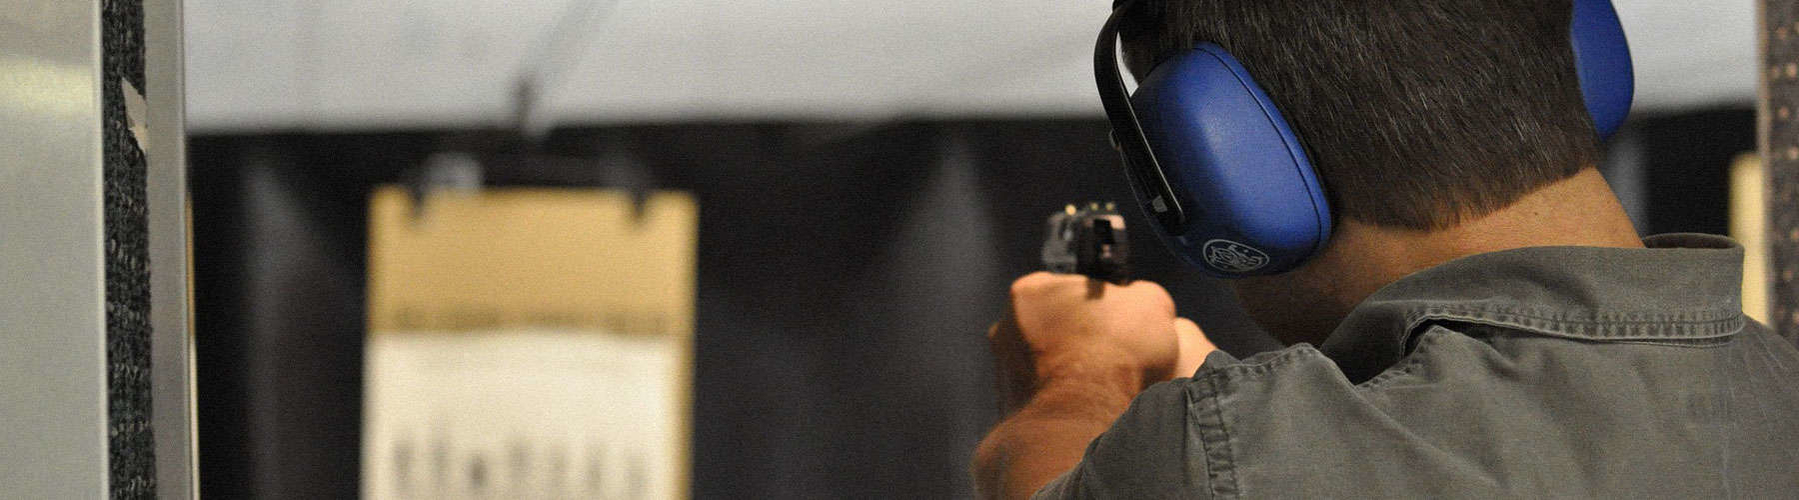 FIREARM SAFETY & LICENSING COMMISSION